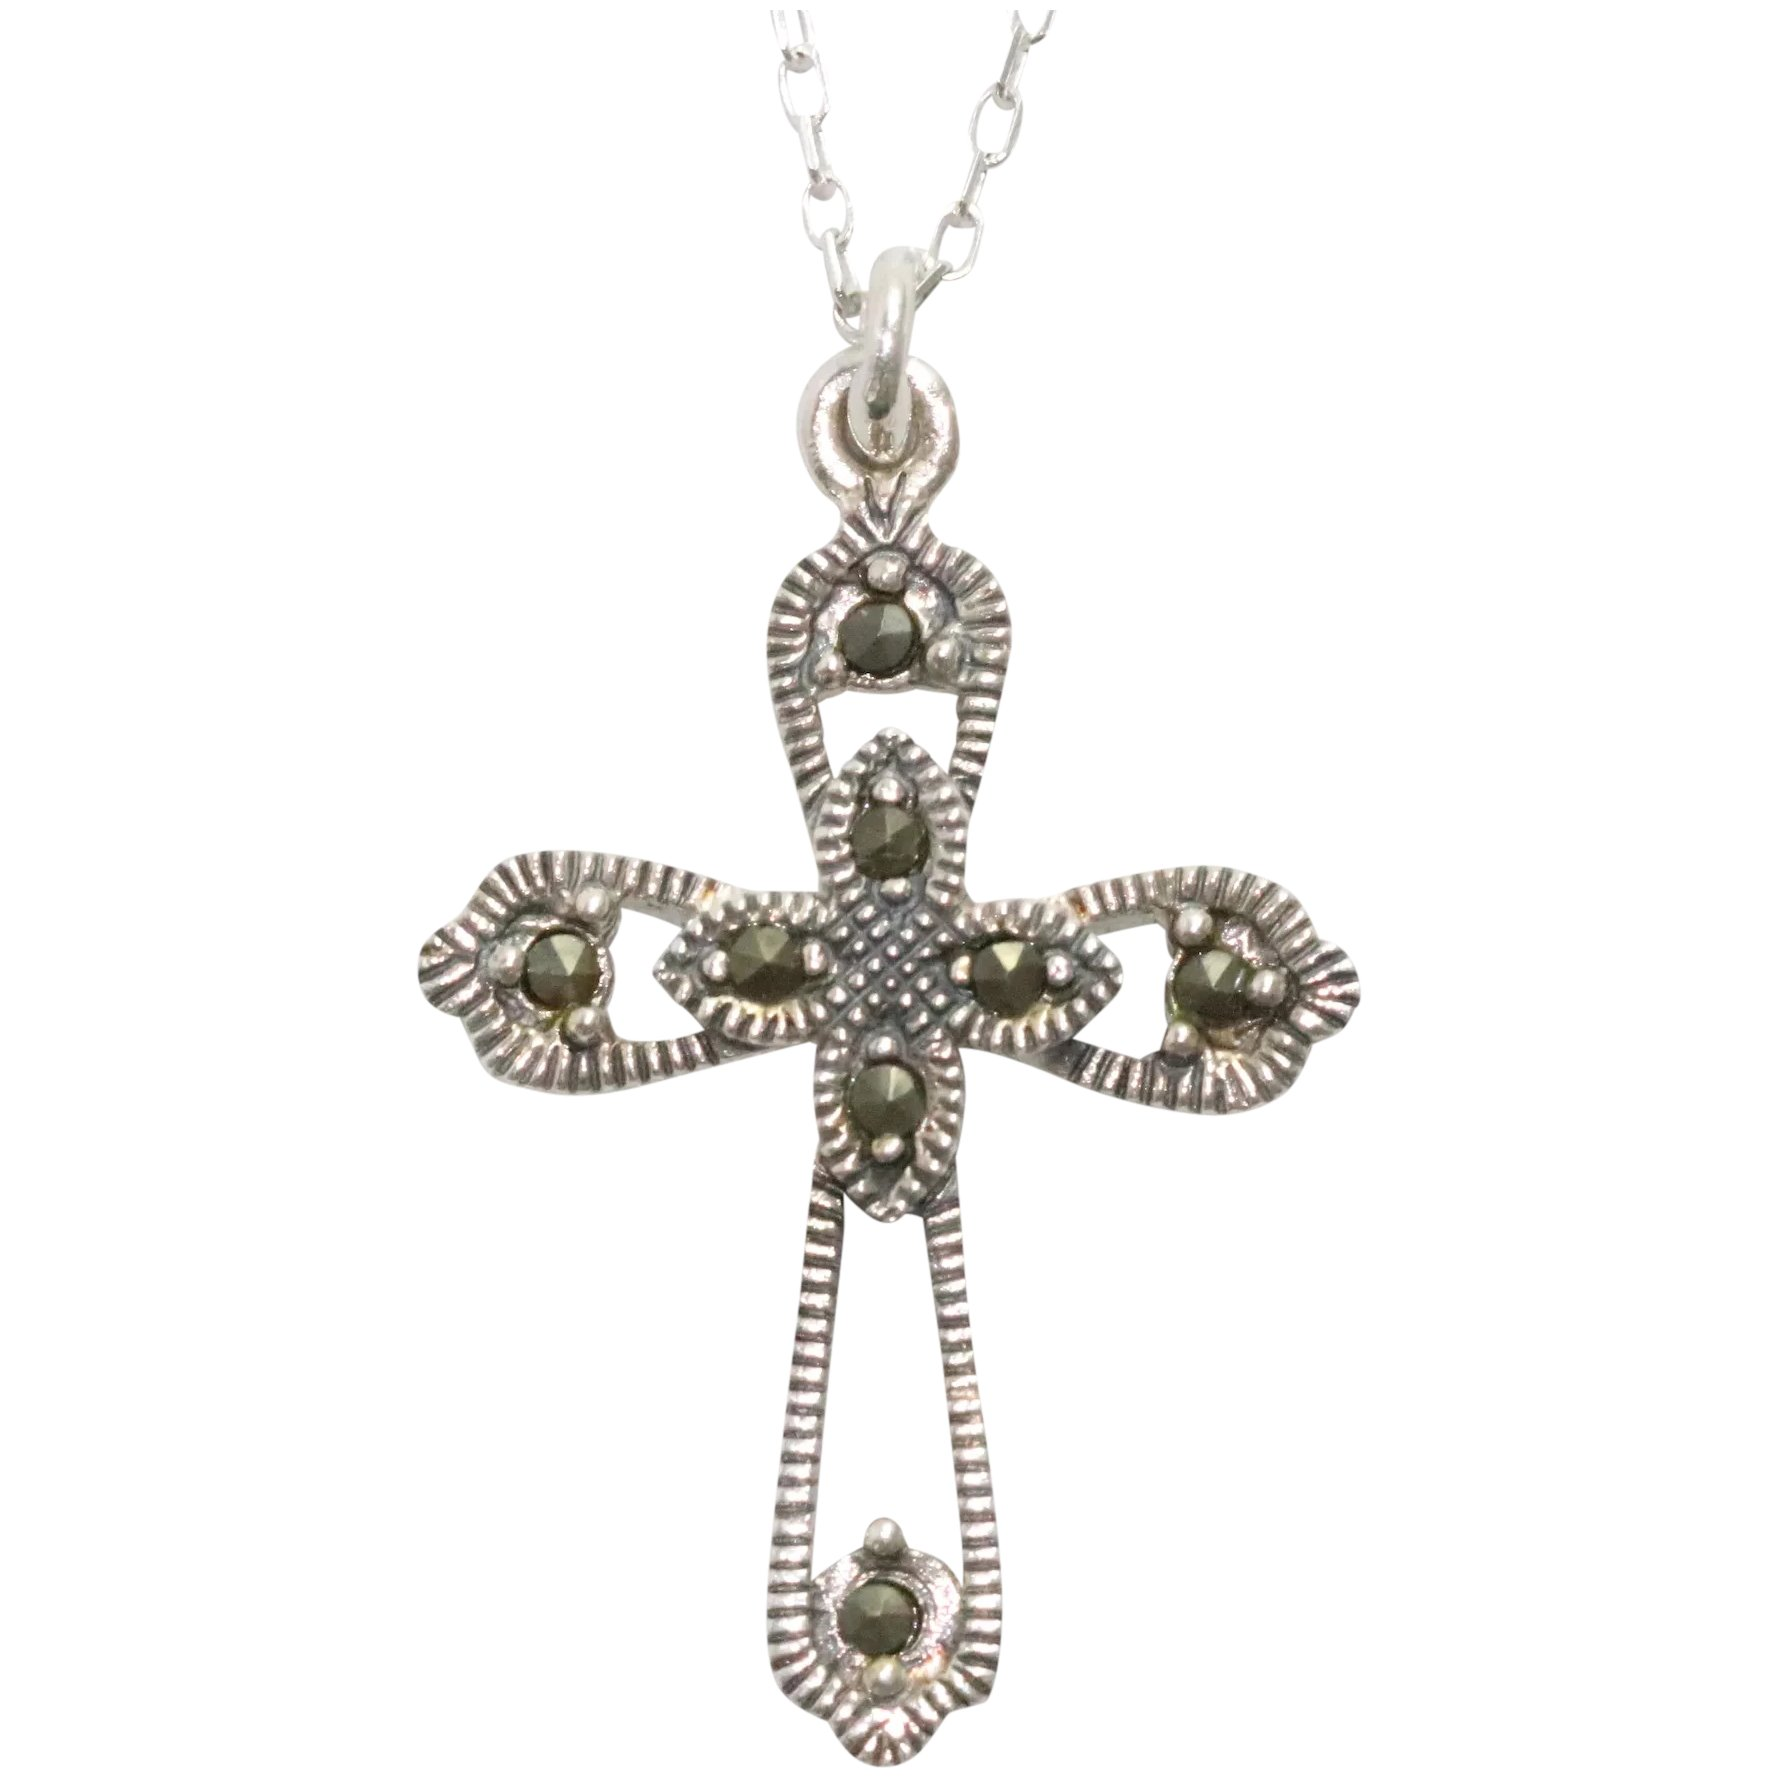 Cross Pendant Vintage 1.85 By 1.13 Sterling Silver With Marcasite And Red Stone